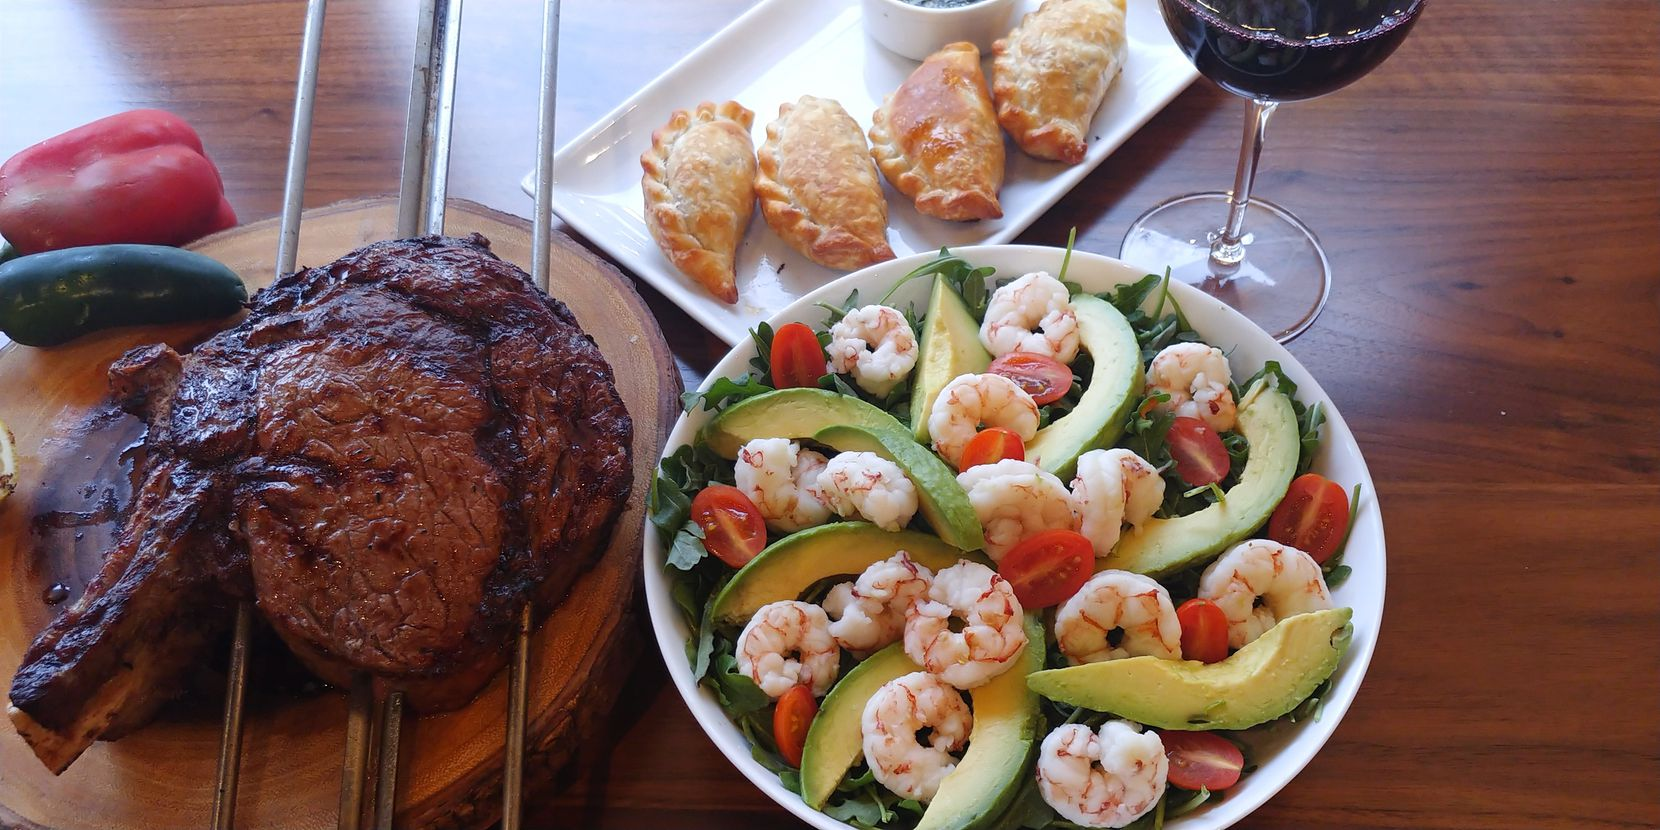 12 Cuts Brazilian Steakhouse offers prime cuts of meat, the avocado and shrimp salad and beef empanadas as part of its Easter offerings this year.